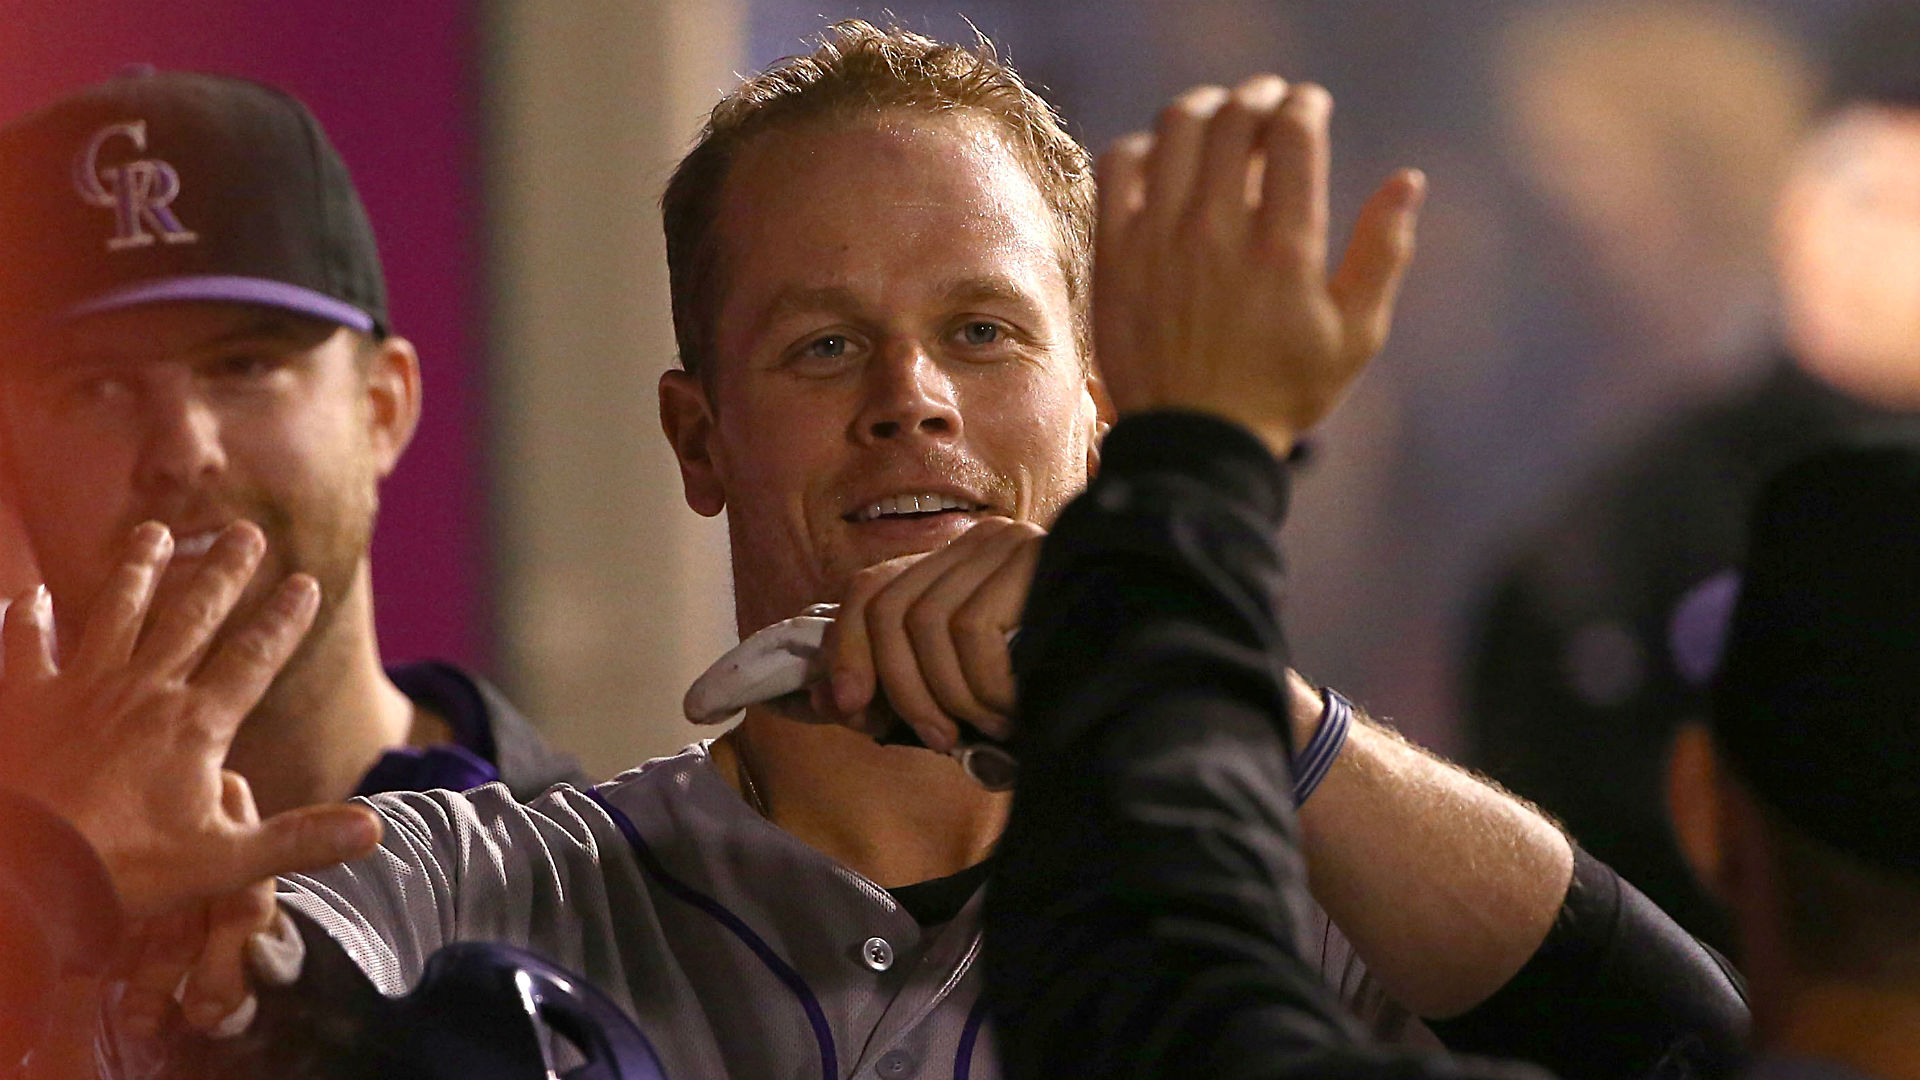 Justin-Morneau-051615-Getty-FTR.jpg